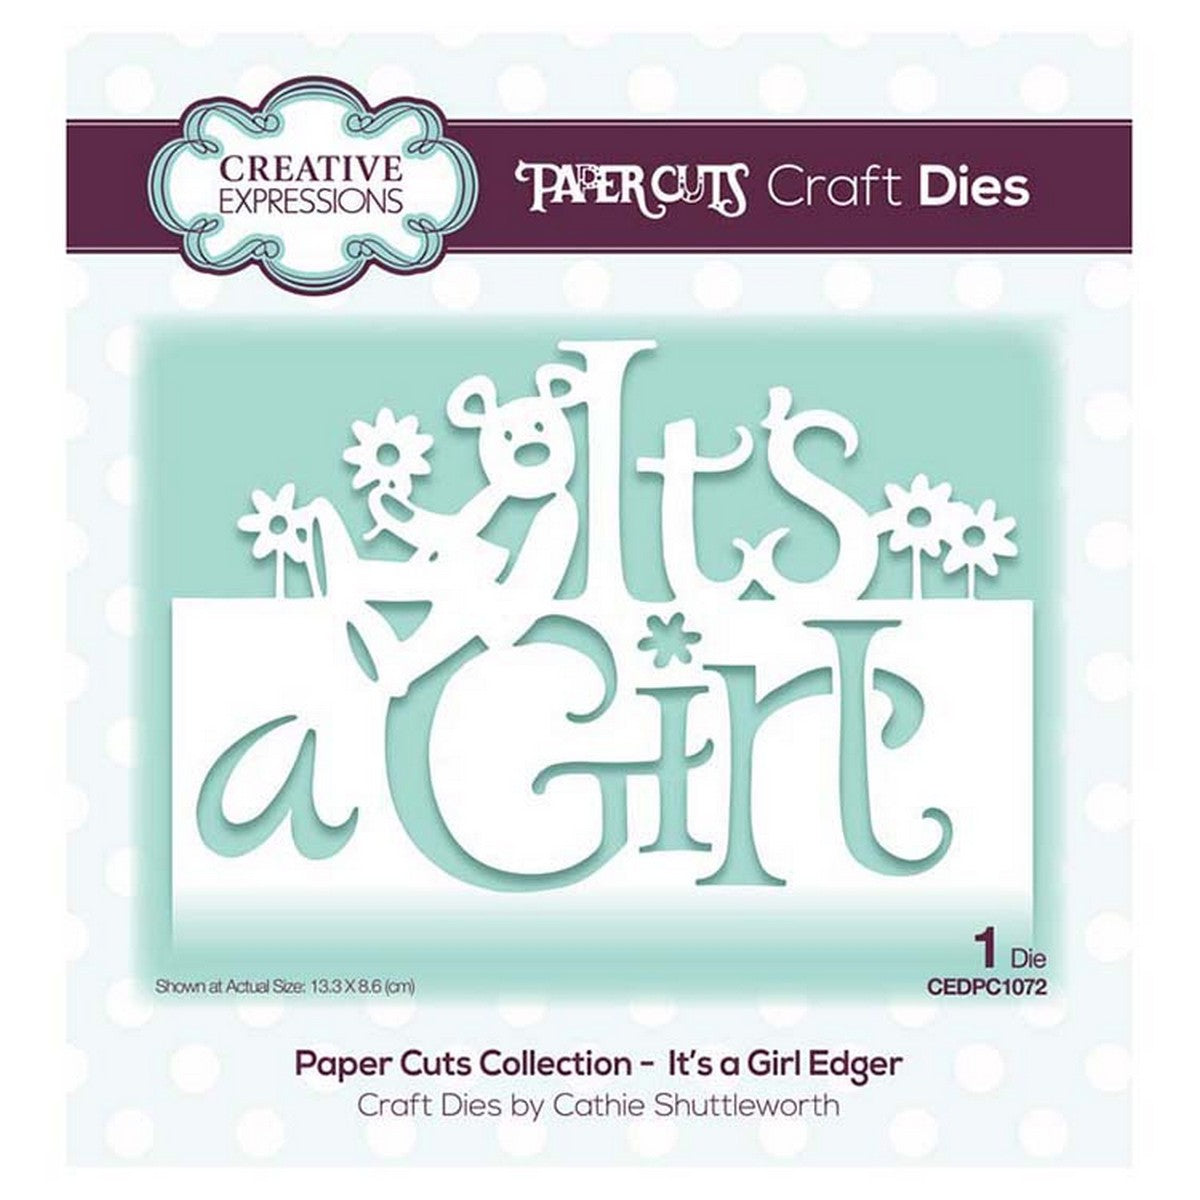 Creative Expressions - Paper Cuts Collection - It's a Girl Edger